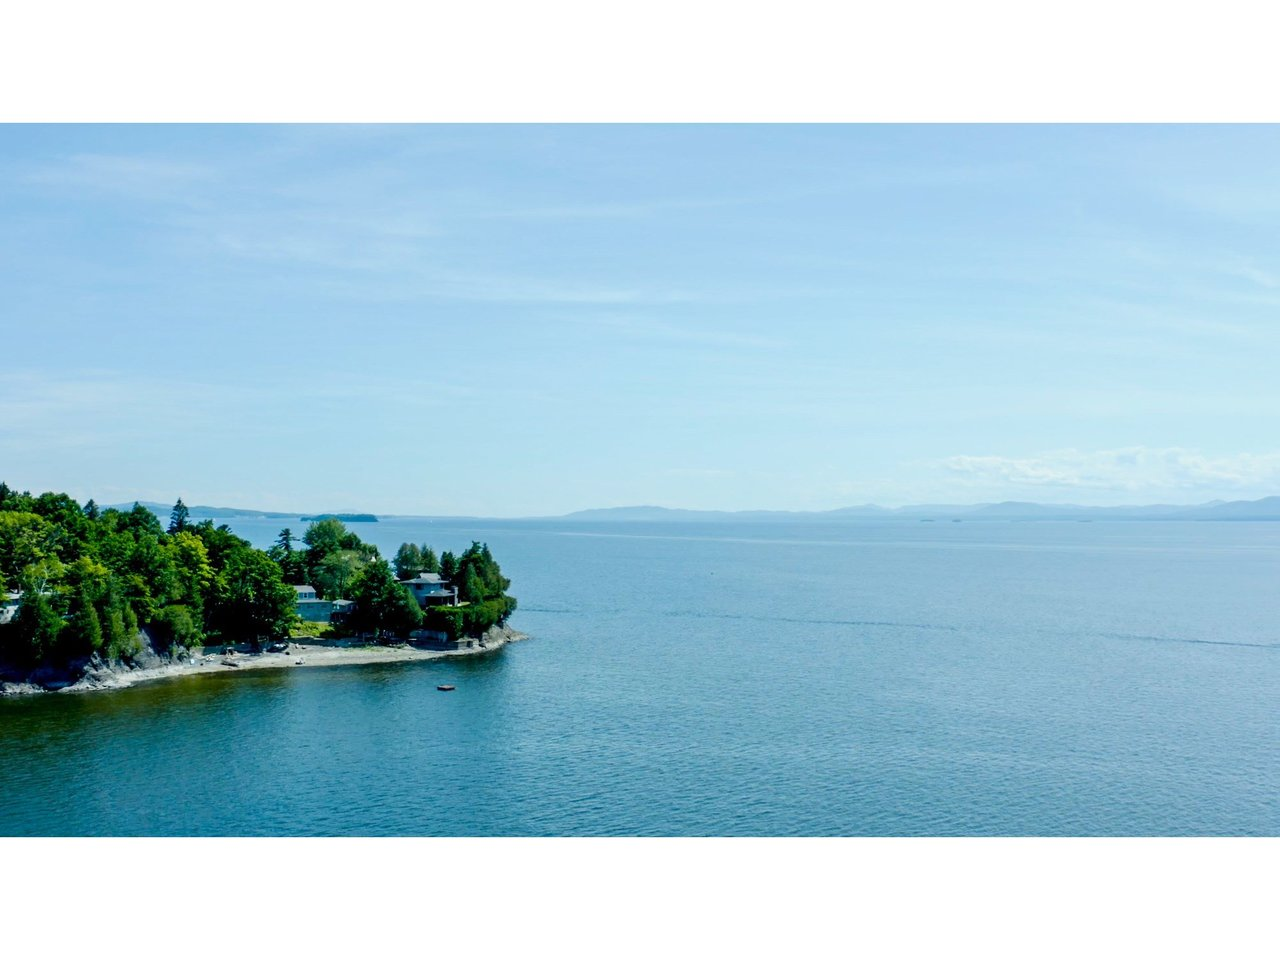 52 Sunset Cliff, Burlington